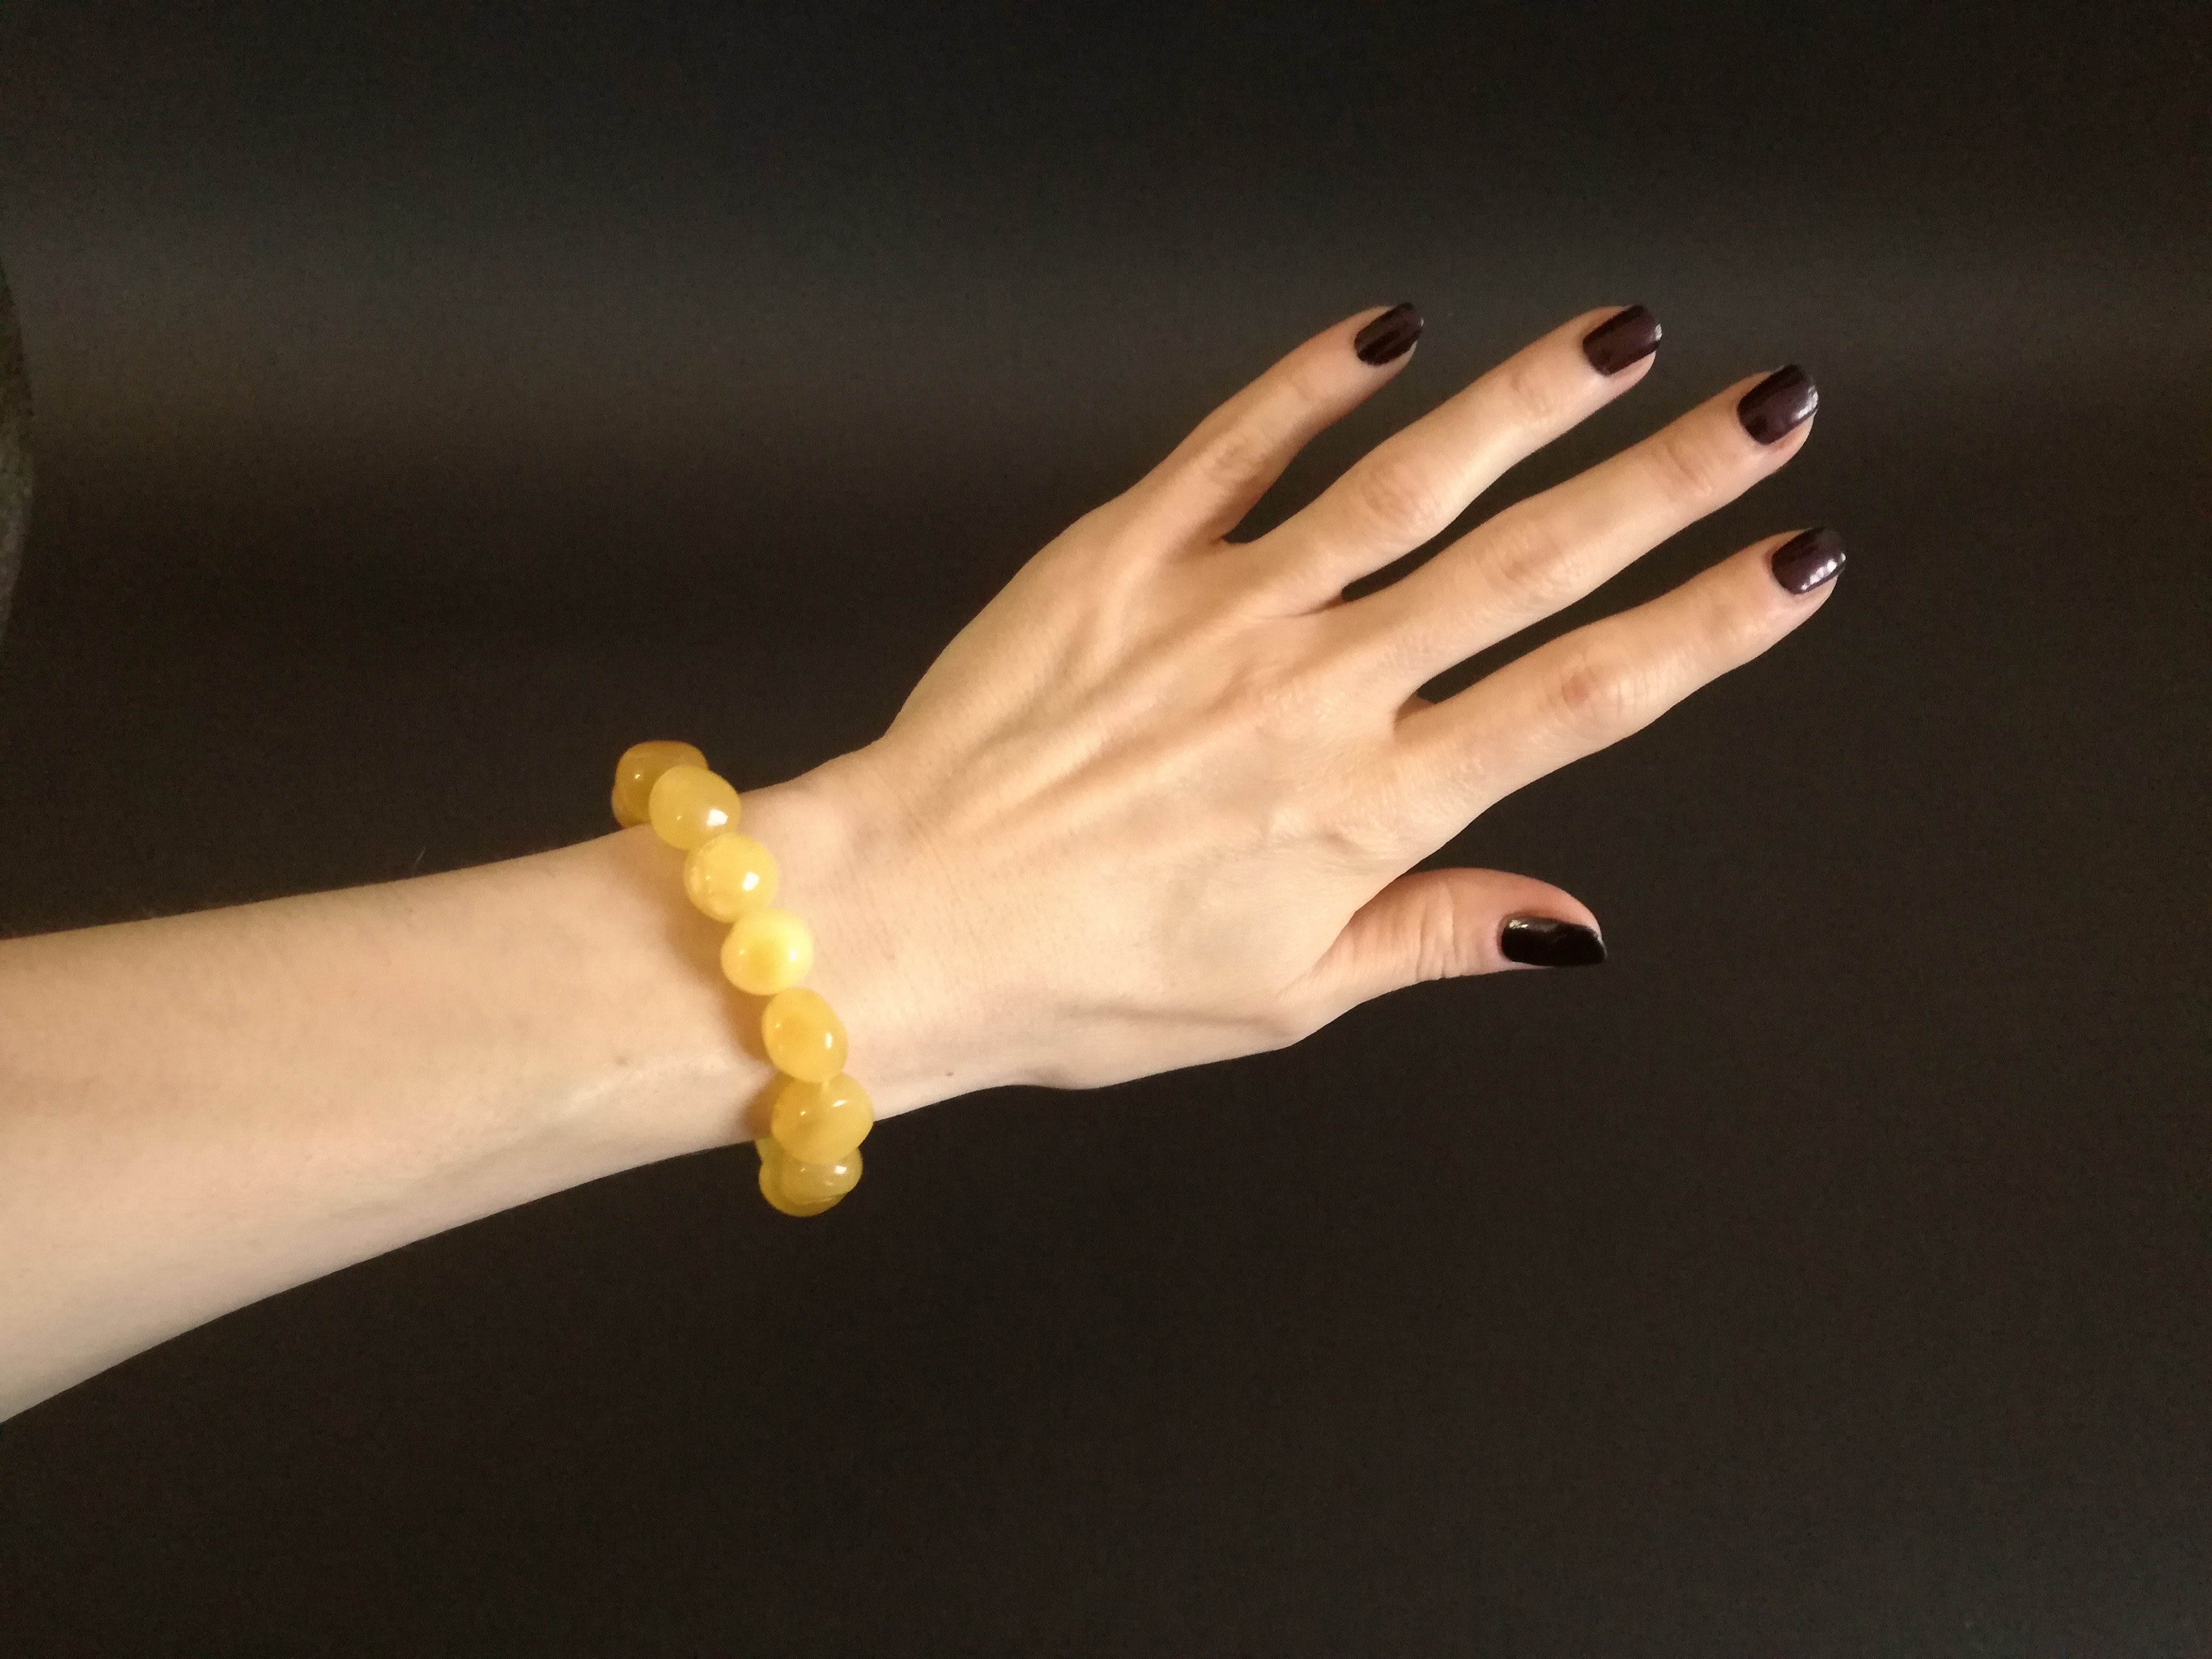 Genuine Handmade Amber Bracelet in Hand, Yellow, Milky, Egg-Yolk Oval Beads, medium Size, For Her, Nursing Mums